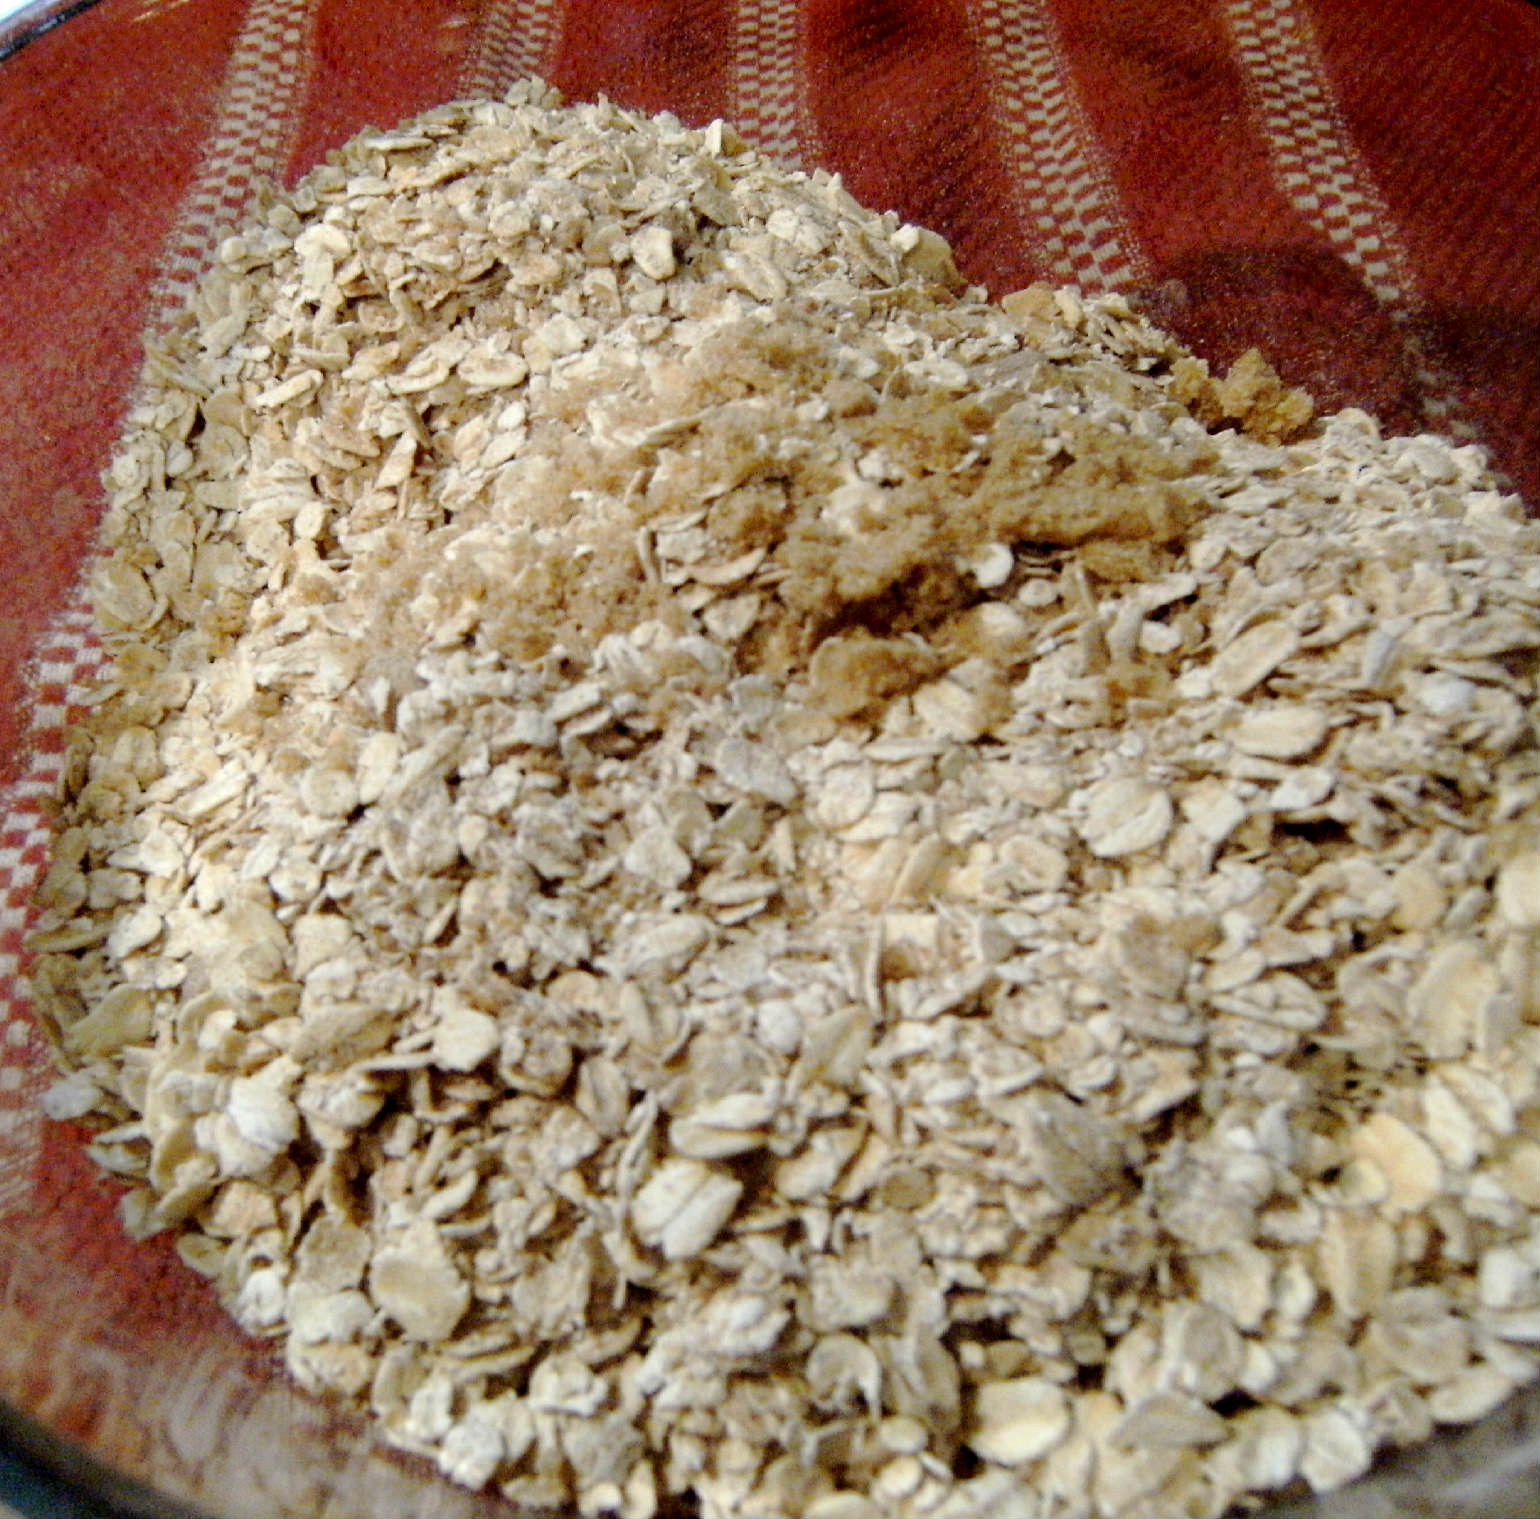 adding sugar to dry ingredients for baked oatmeal recipe